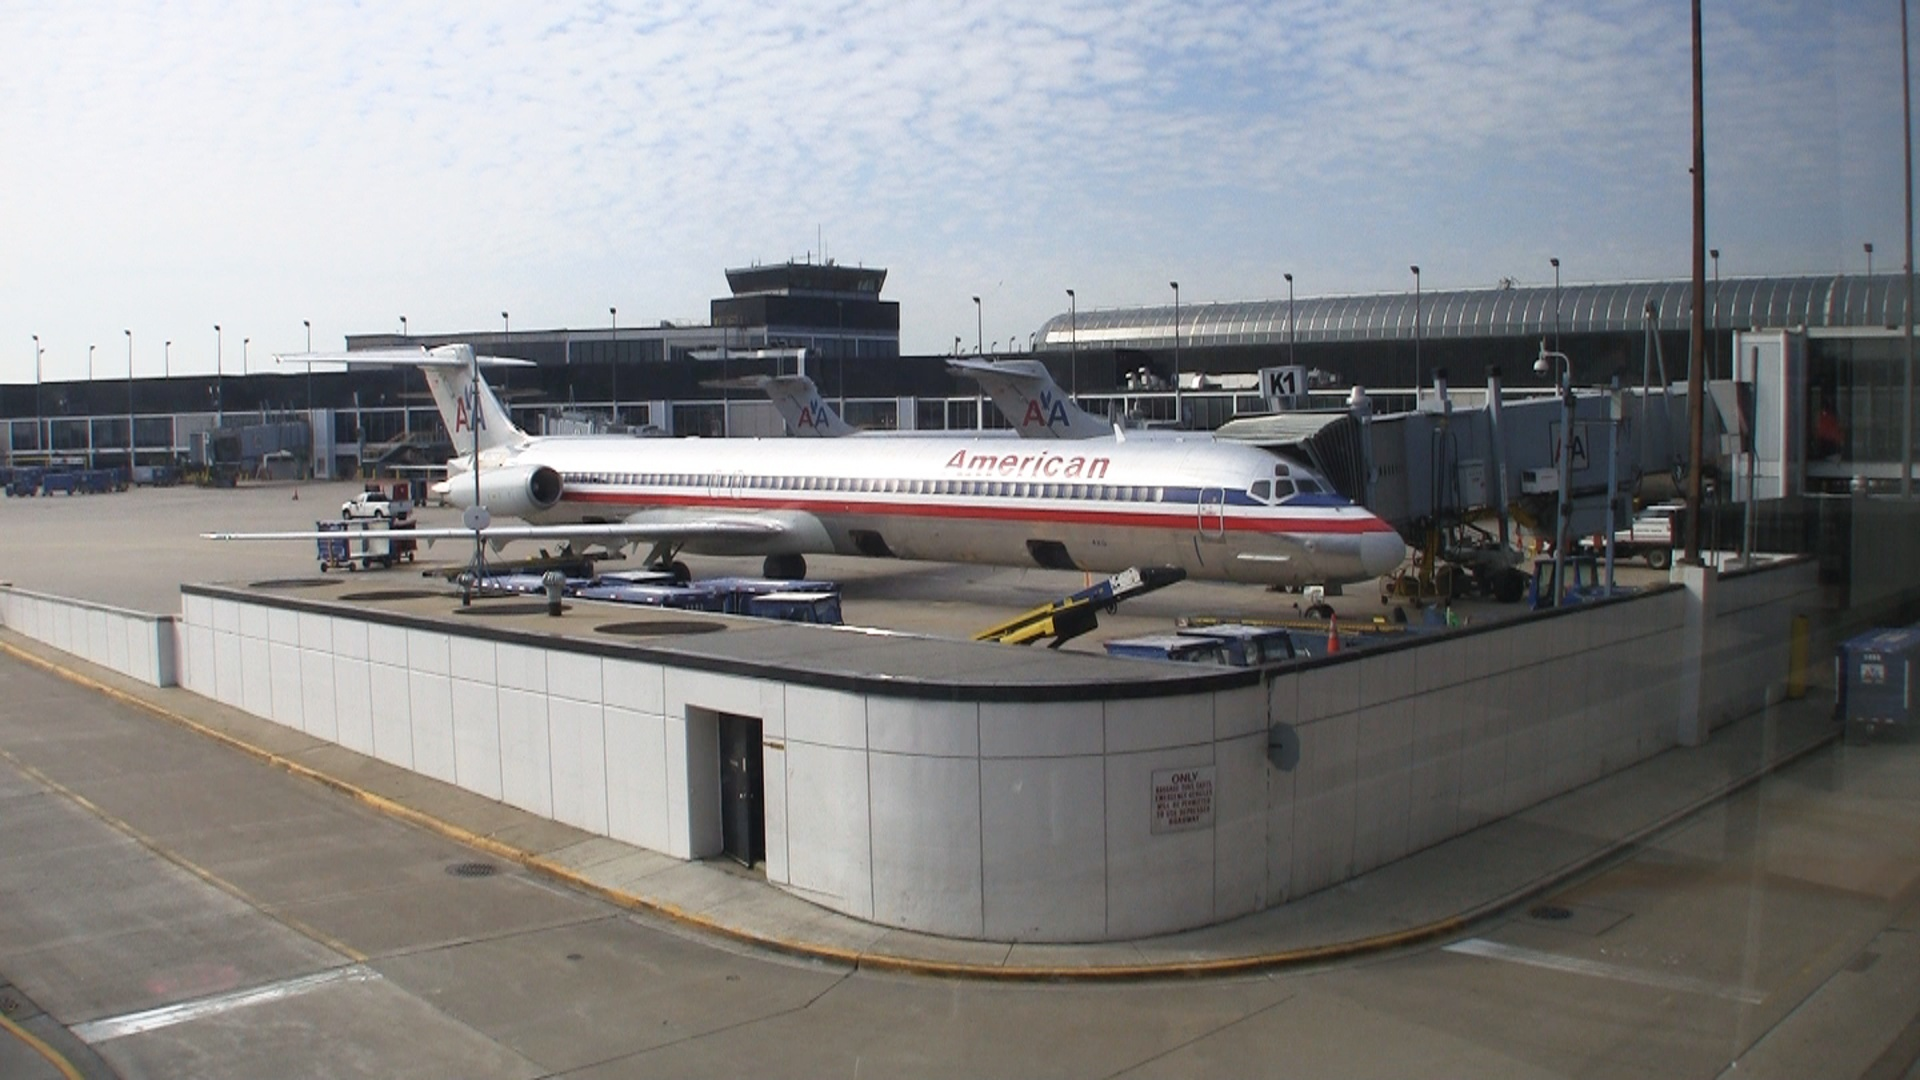 American Airlines Main Cabin Express S80 at the gate